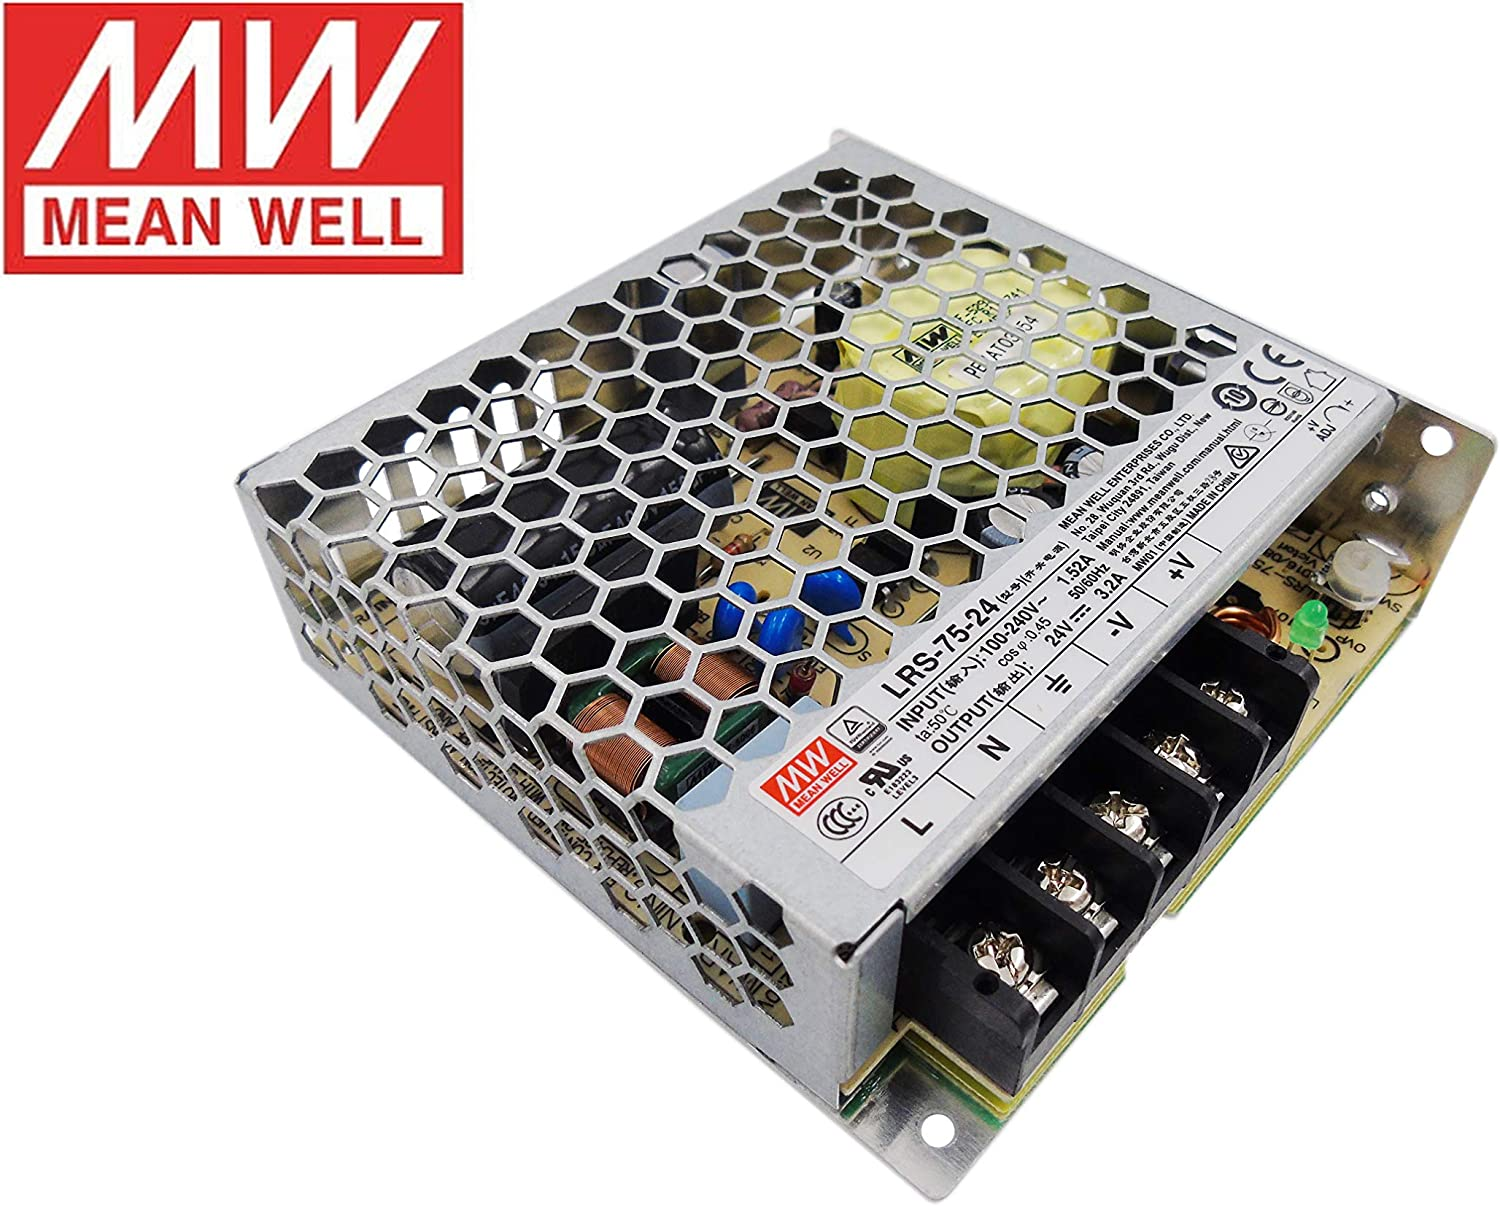 MeanWell Fuente de alimentacion 75W 24V 3.2A Enclosed LRS-75-24 Power Supply AC/DC